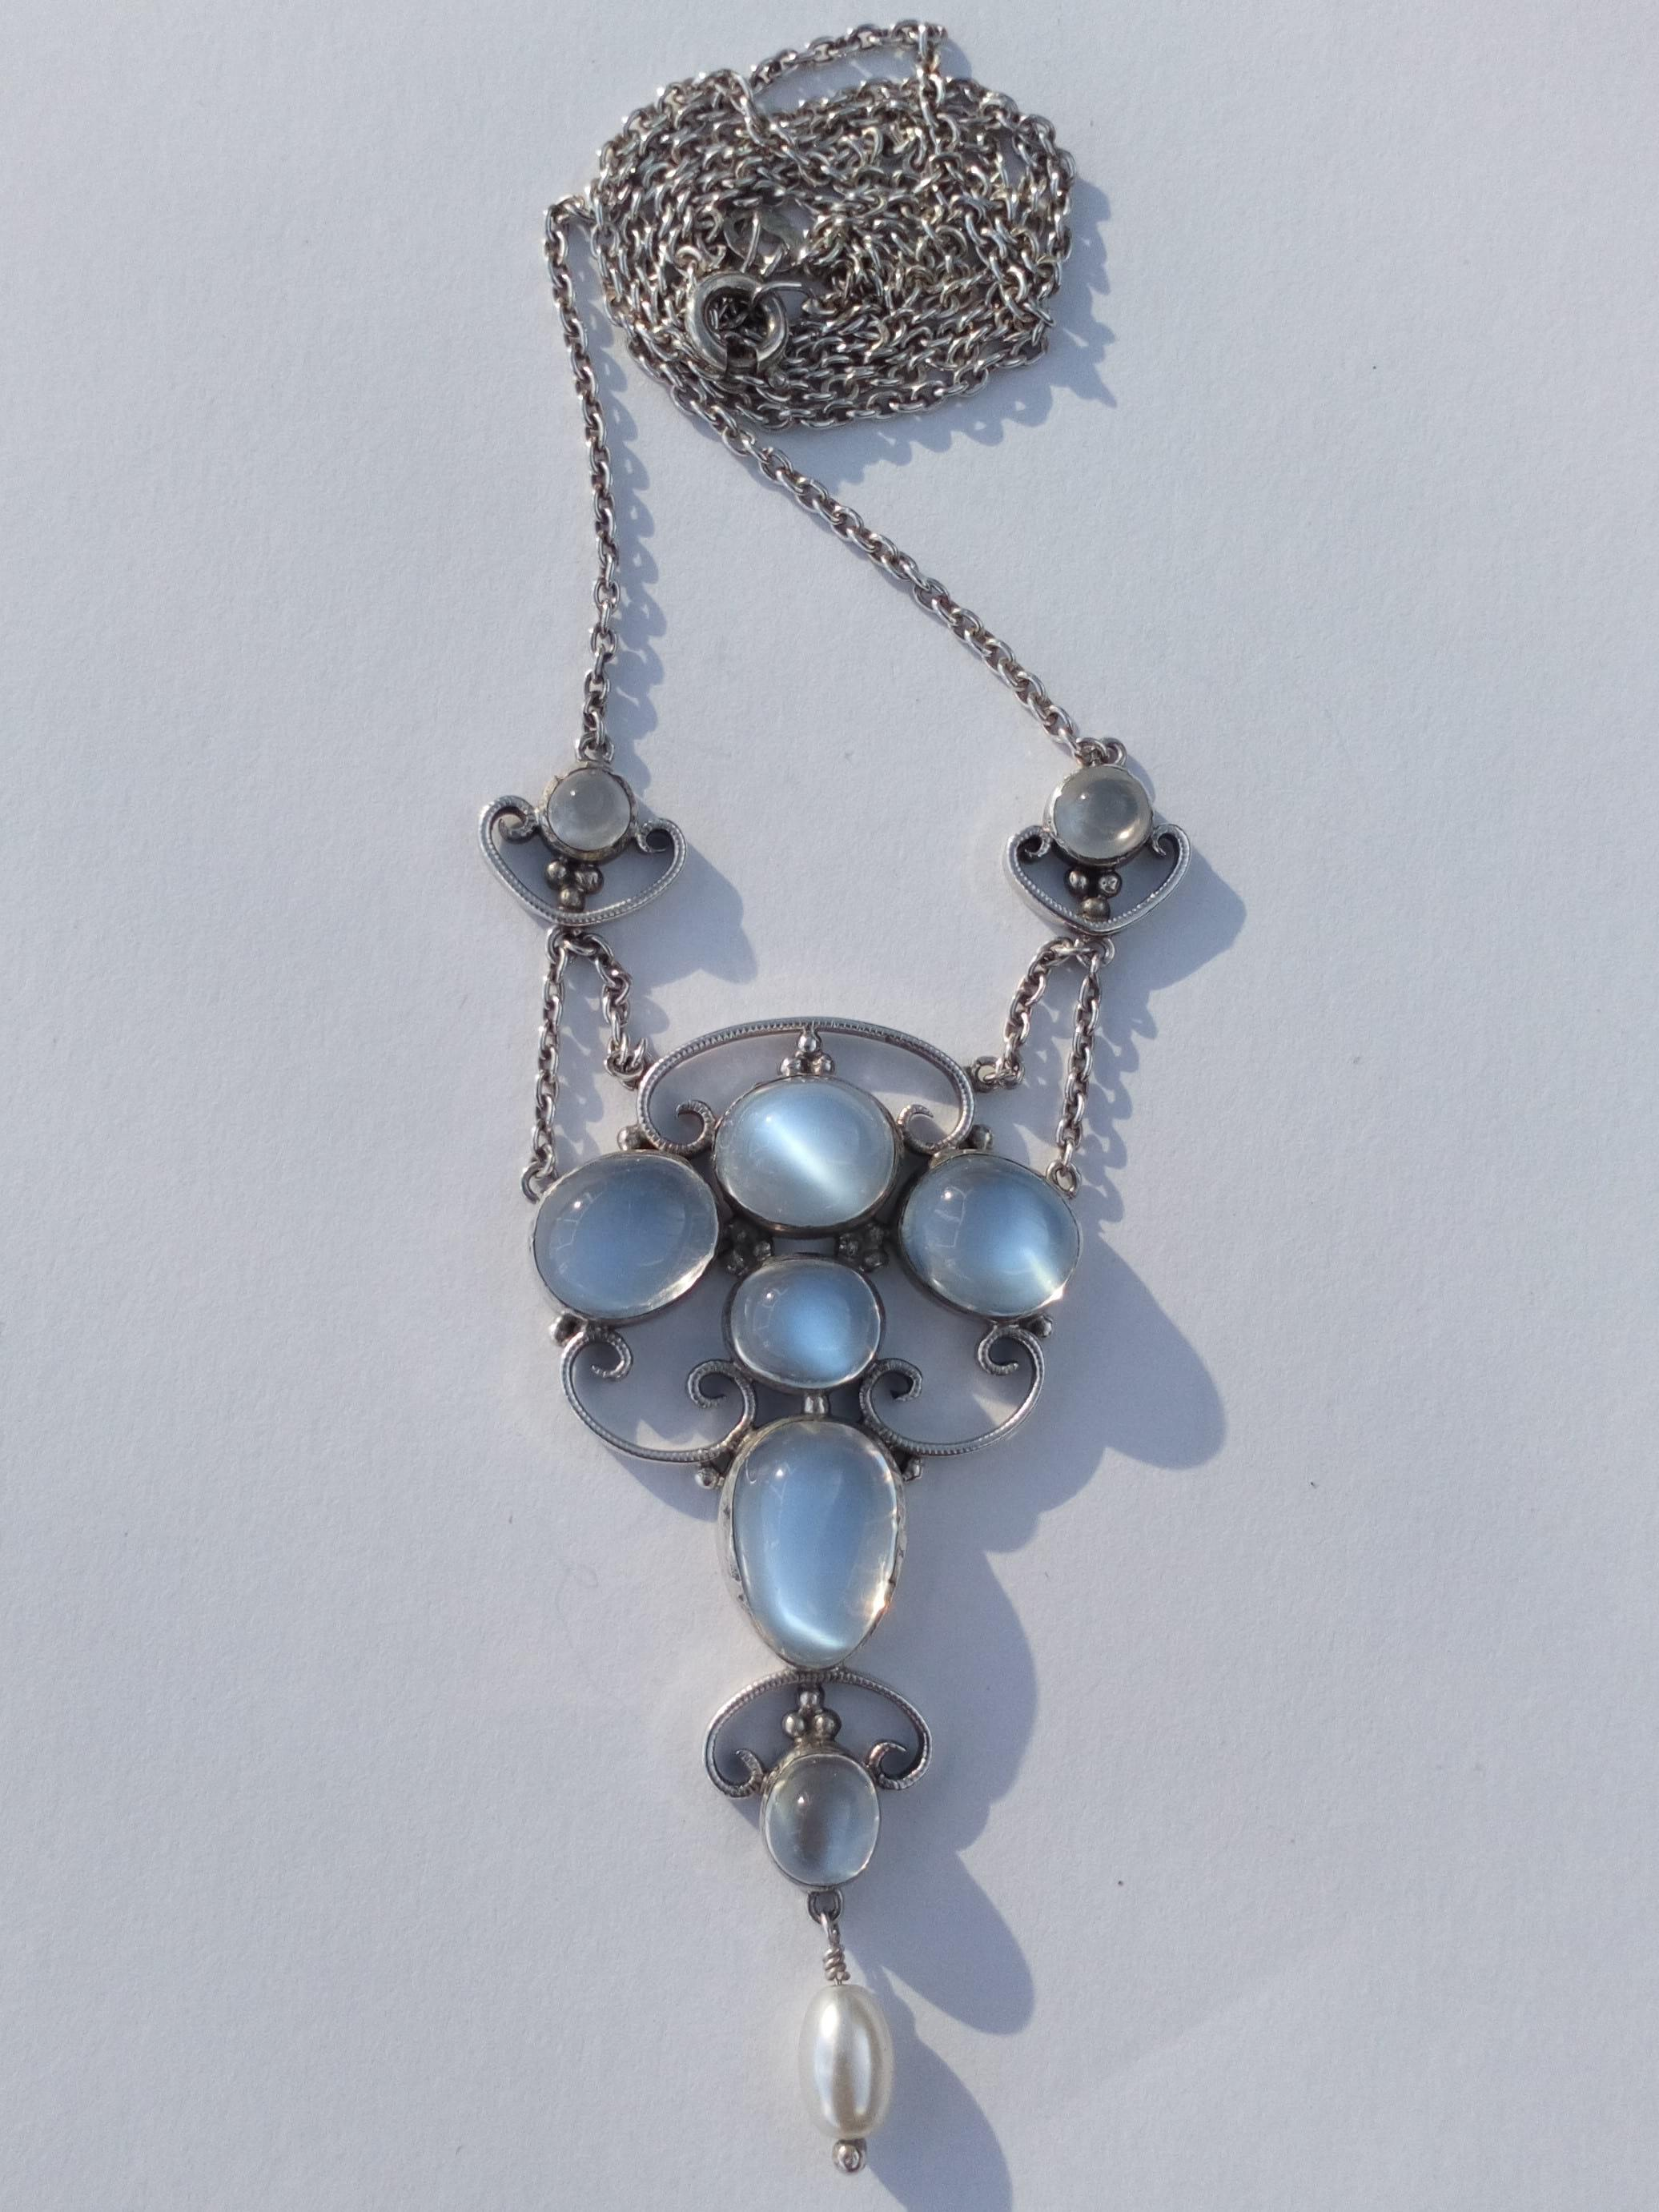 Antique Arts and Crafts Silver Moonstone Dropper Pendant Lavaliere Necklace circa 1910